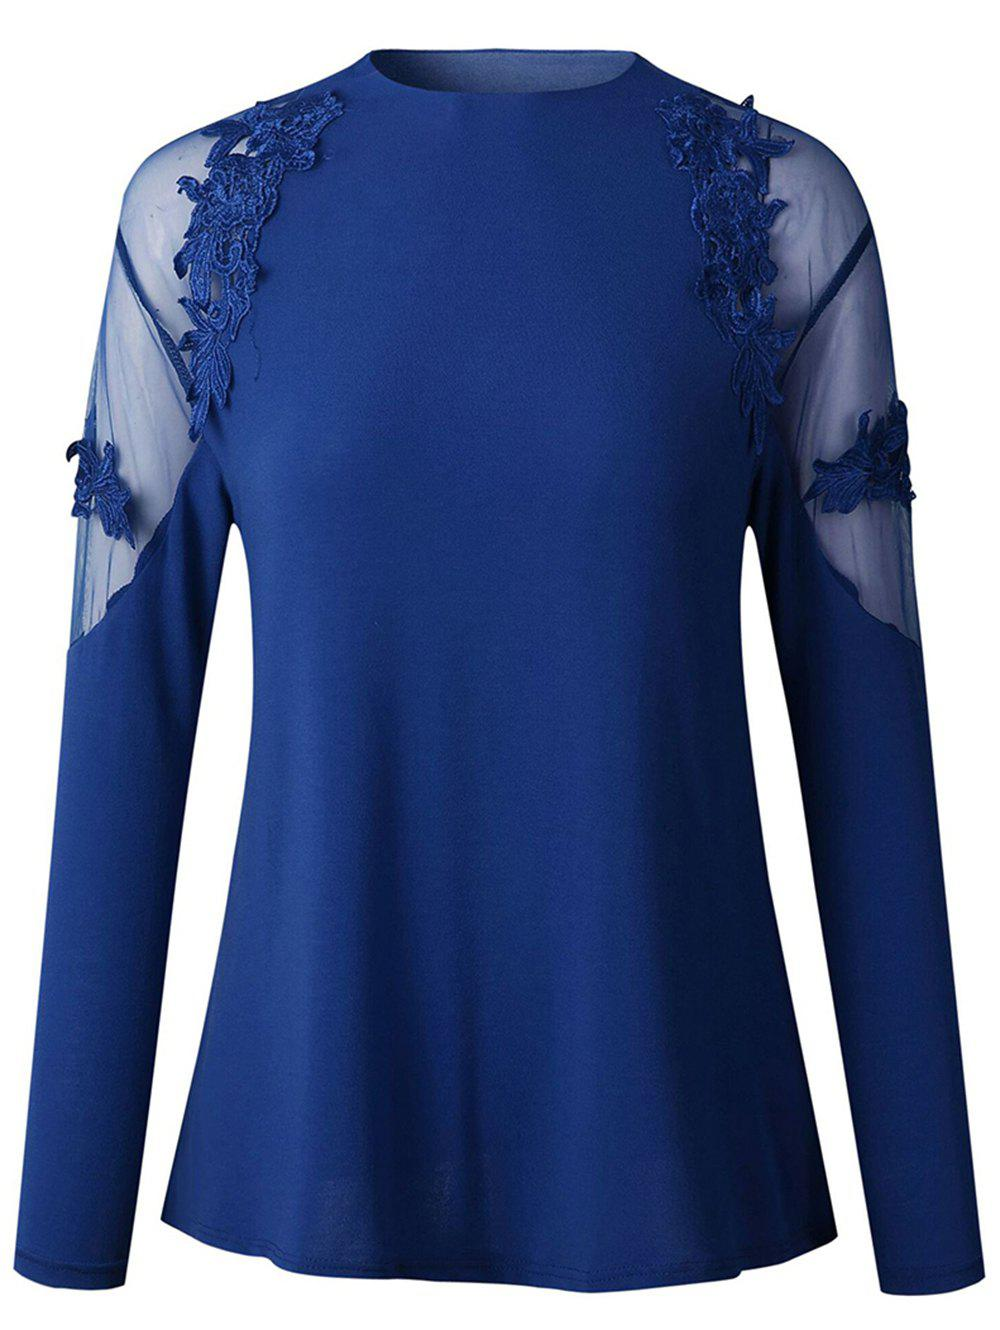 Shop 2019 New Womens Fashion lace Long Sleeve Shirt  Tops